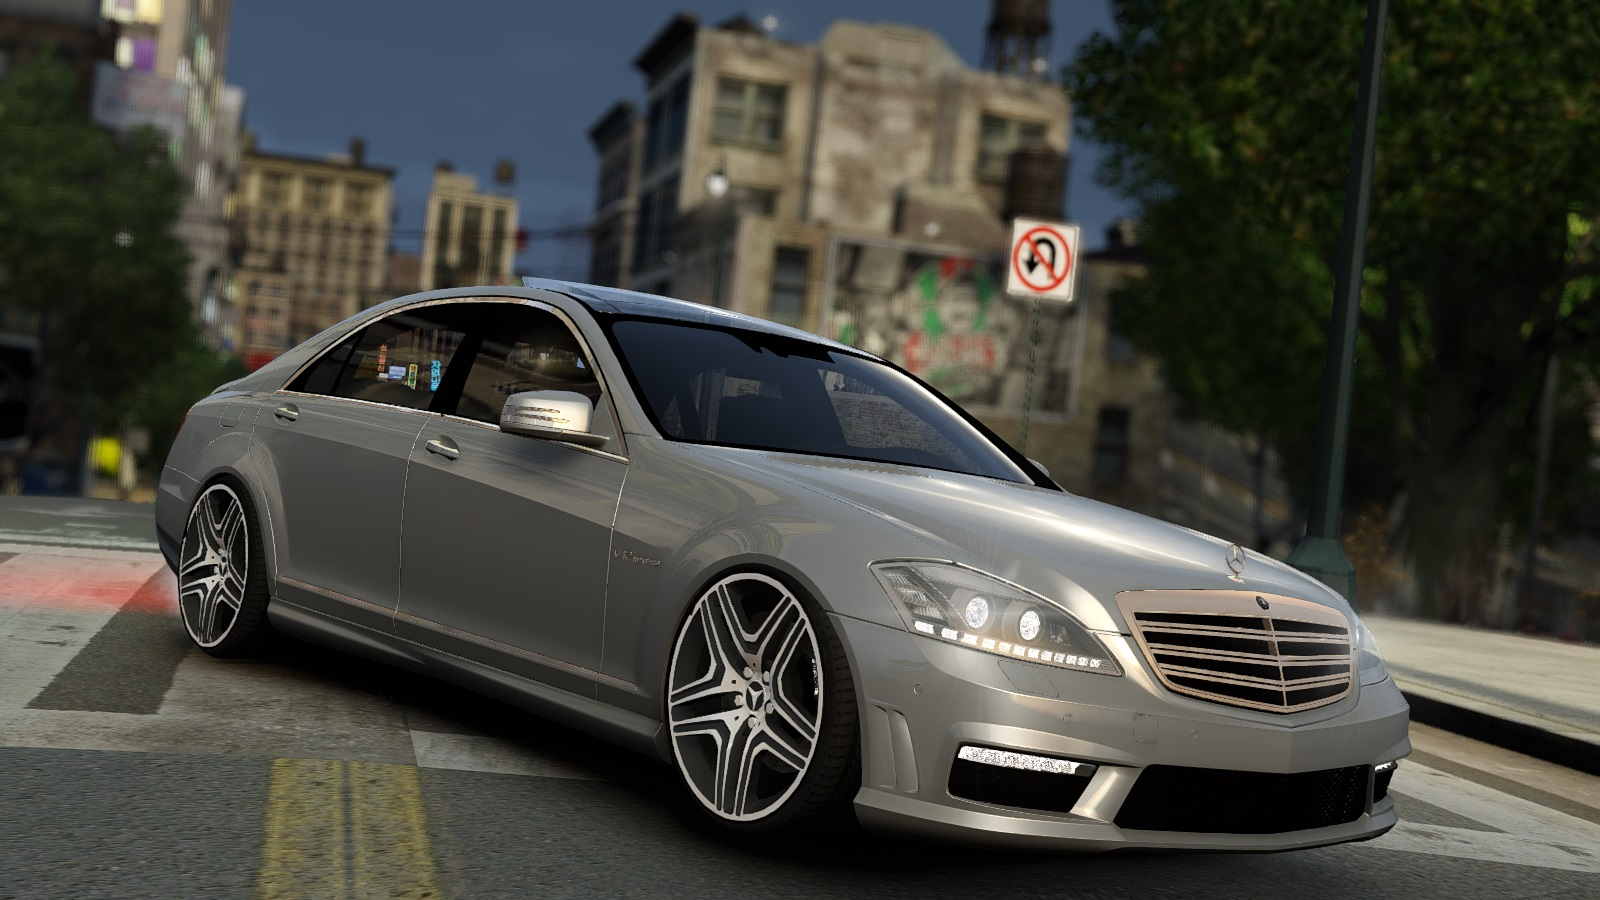 1404752299-gtaiv-exe-dx9-20140707-134603